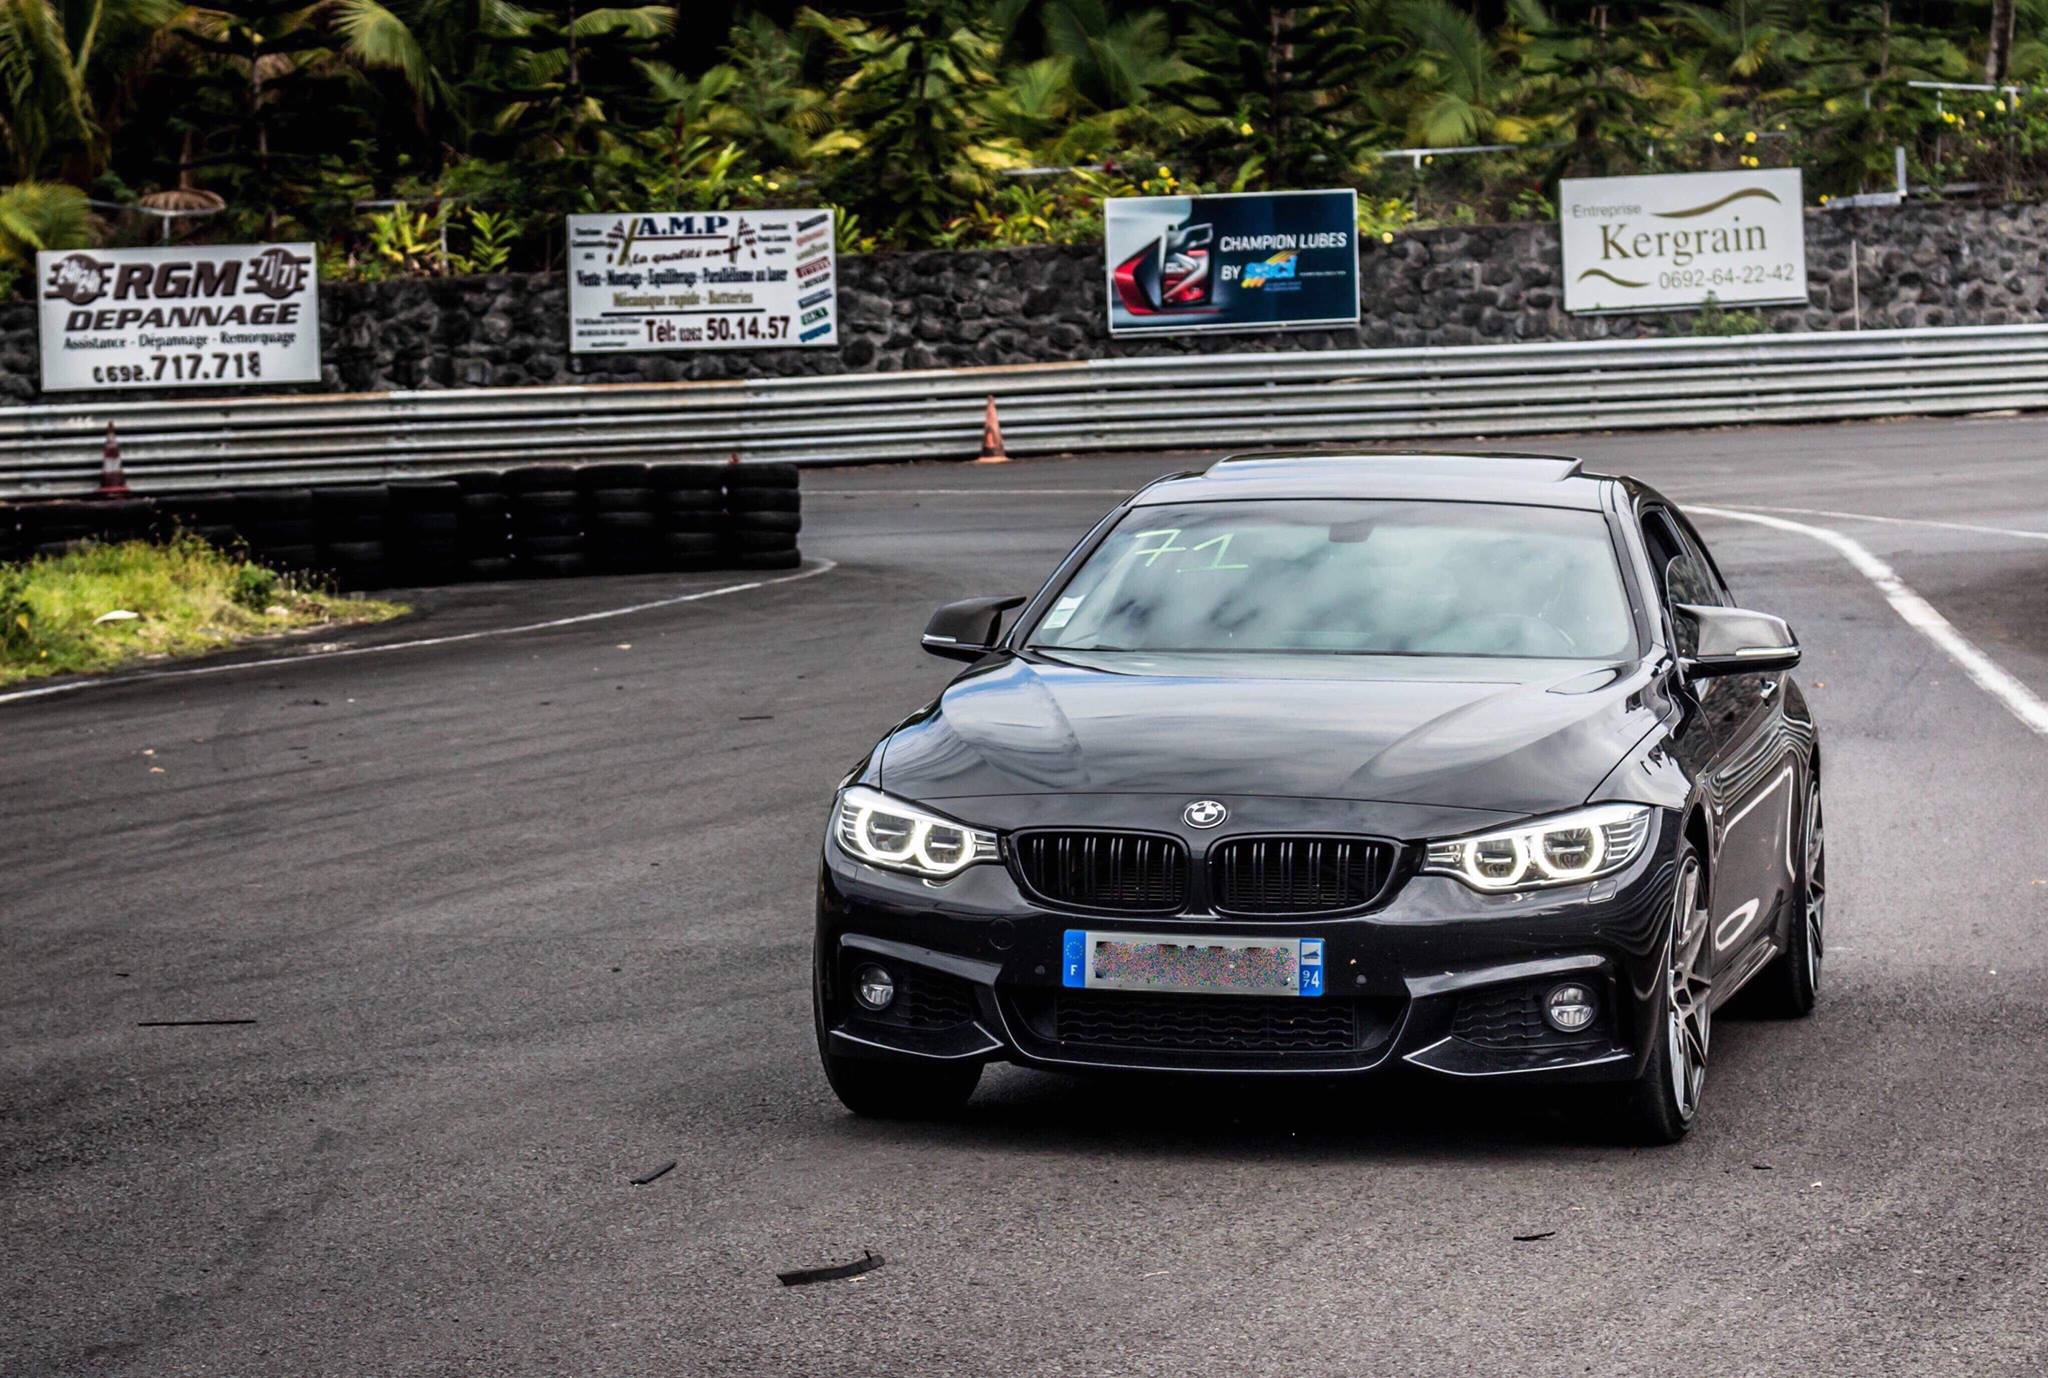 CHIPTUNING BMW F32 435d xDrive - stage 4